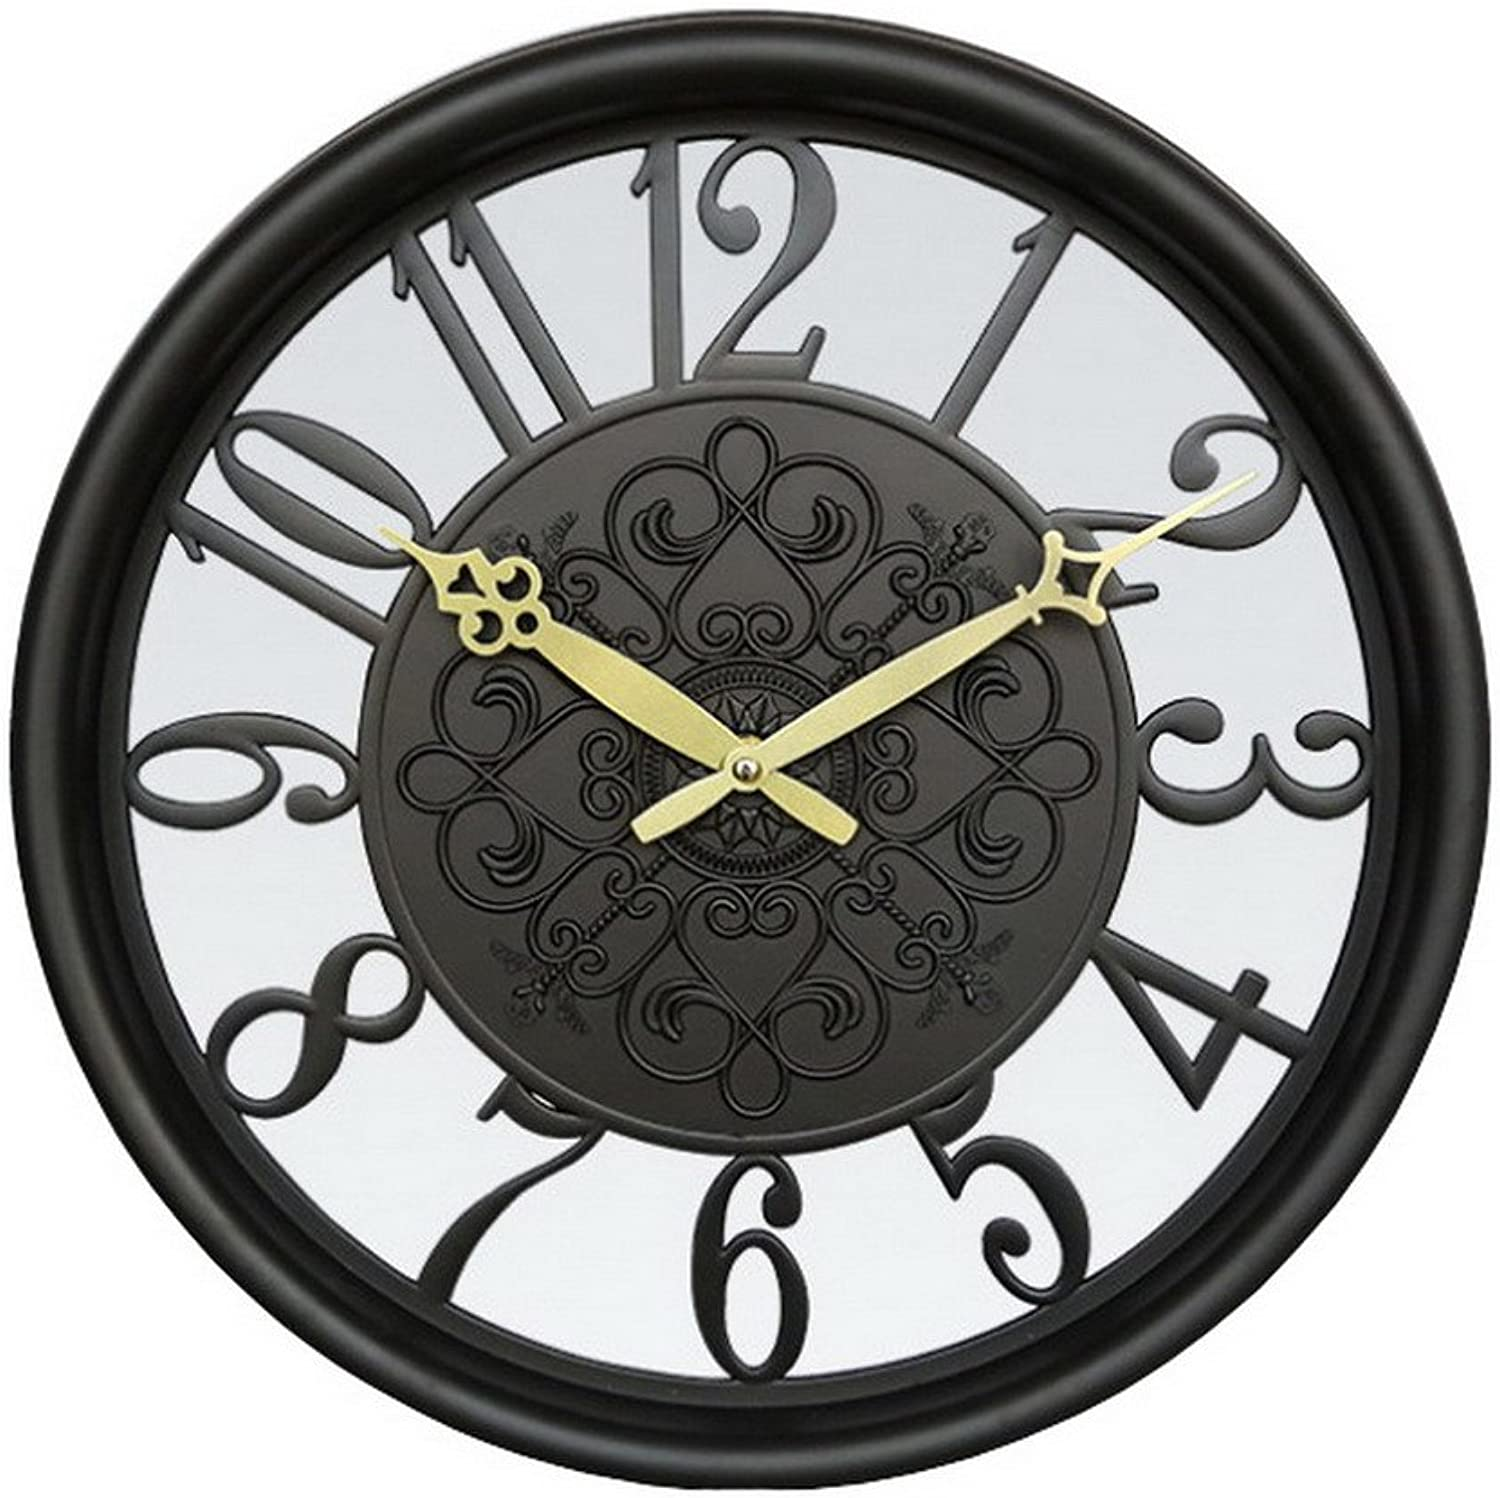 12.5 Inch Round Wall Clock Silent Non-ticking Wall Clock